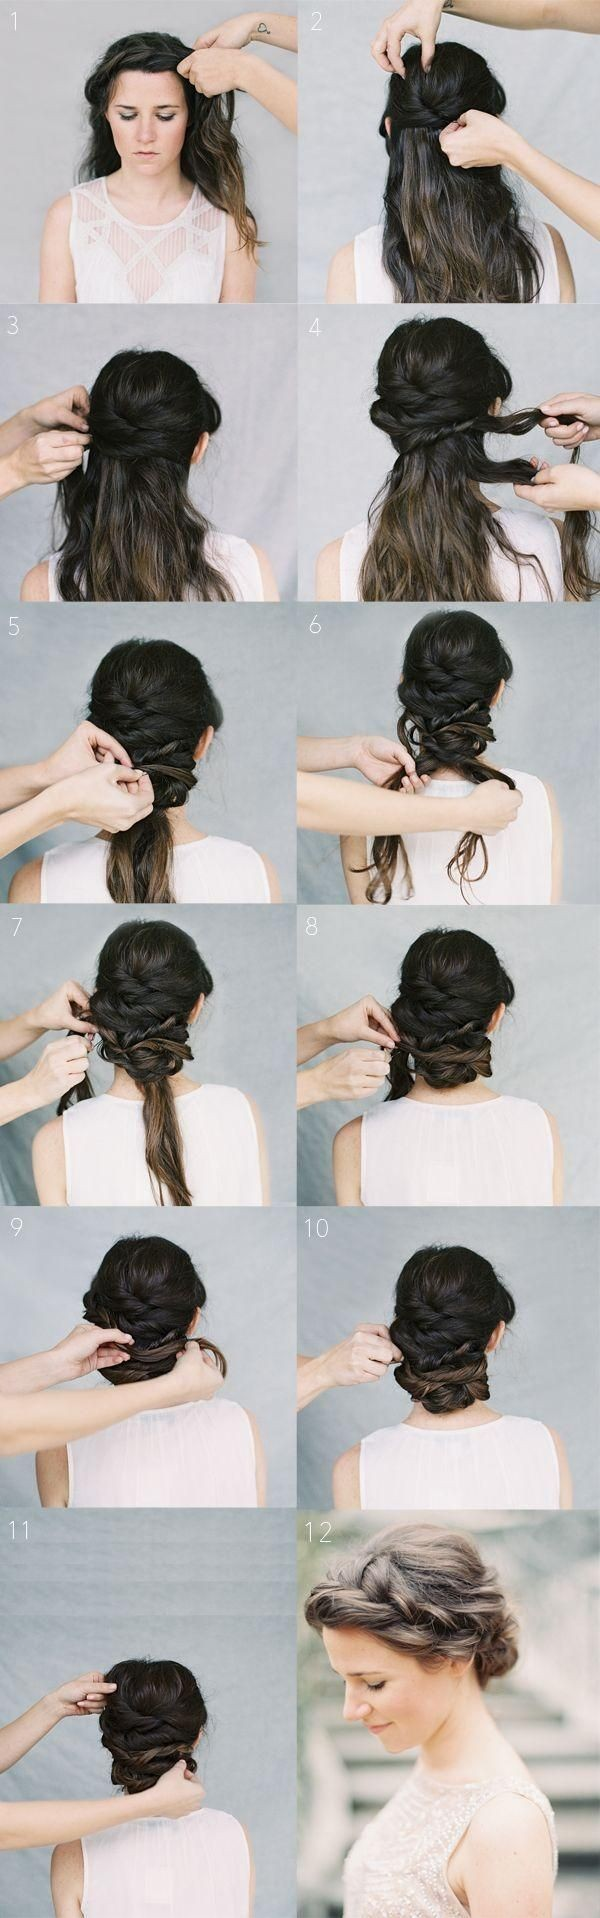 Twist Updo Hairstyles with Braids: Wedding Hairstyles Tutorial